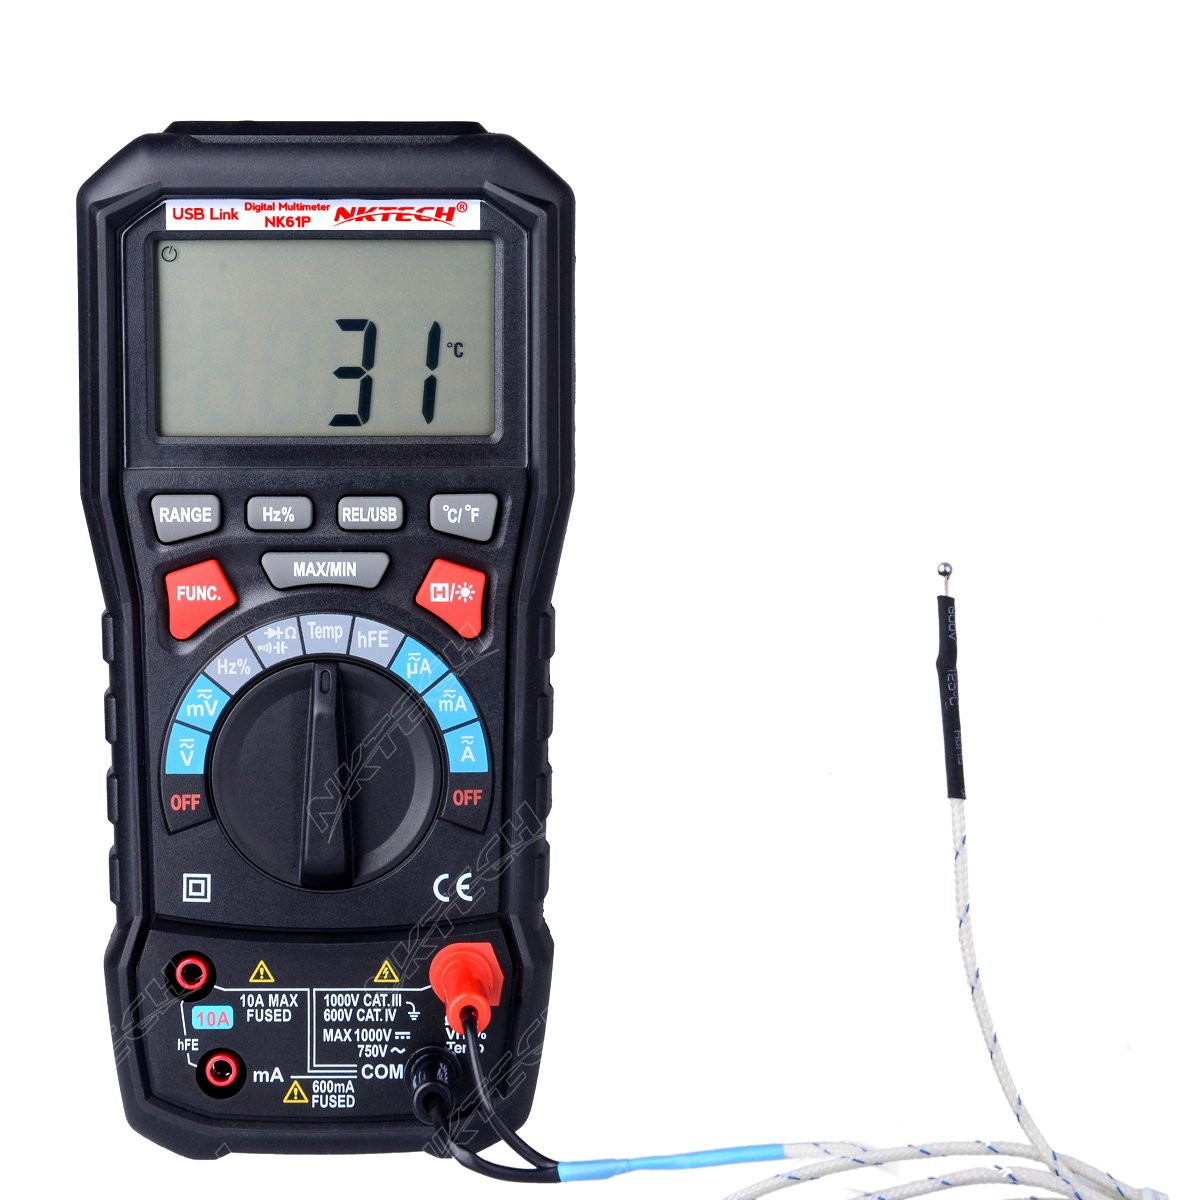 NKTECH NK61P TURE RMS Auto Ranging Digital Multimeter Tester DMM AC DC Resistance Capacitance Temperature Diode Connectivity Frequency Duty Ratio With USB Interface